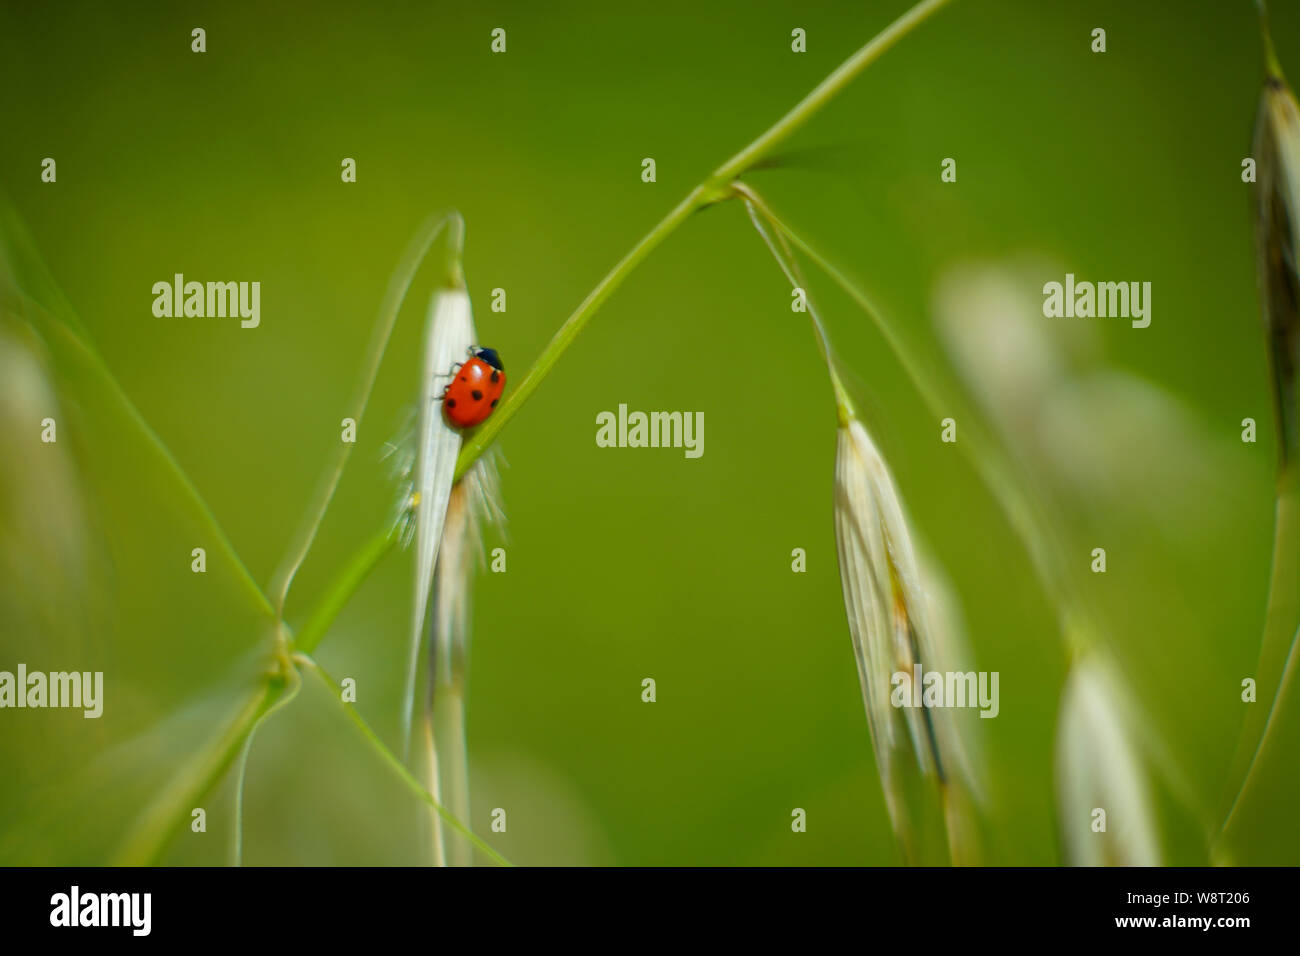 Coccinella septempunctata, the seven-spot ladybird on wild oats (Avena) Photographed in Israel in Spring Stock Photo